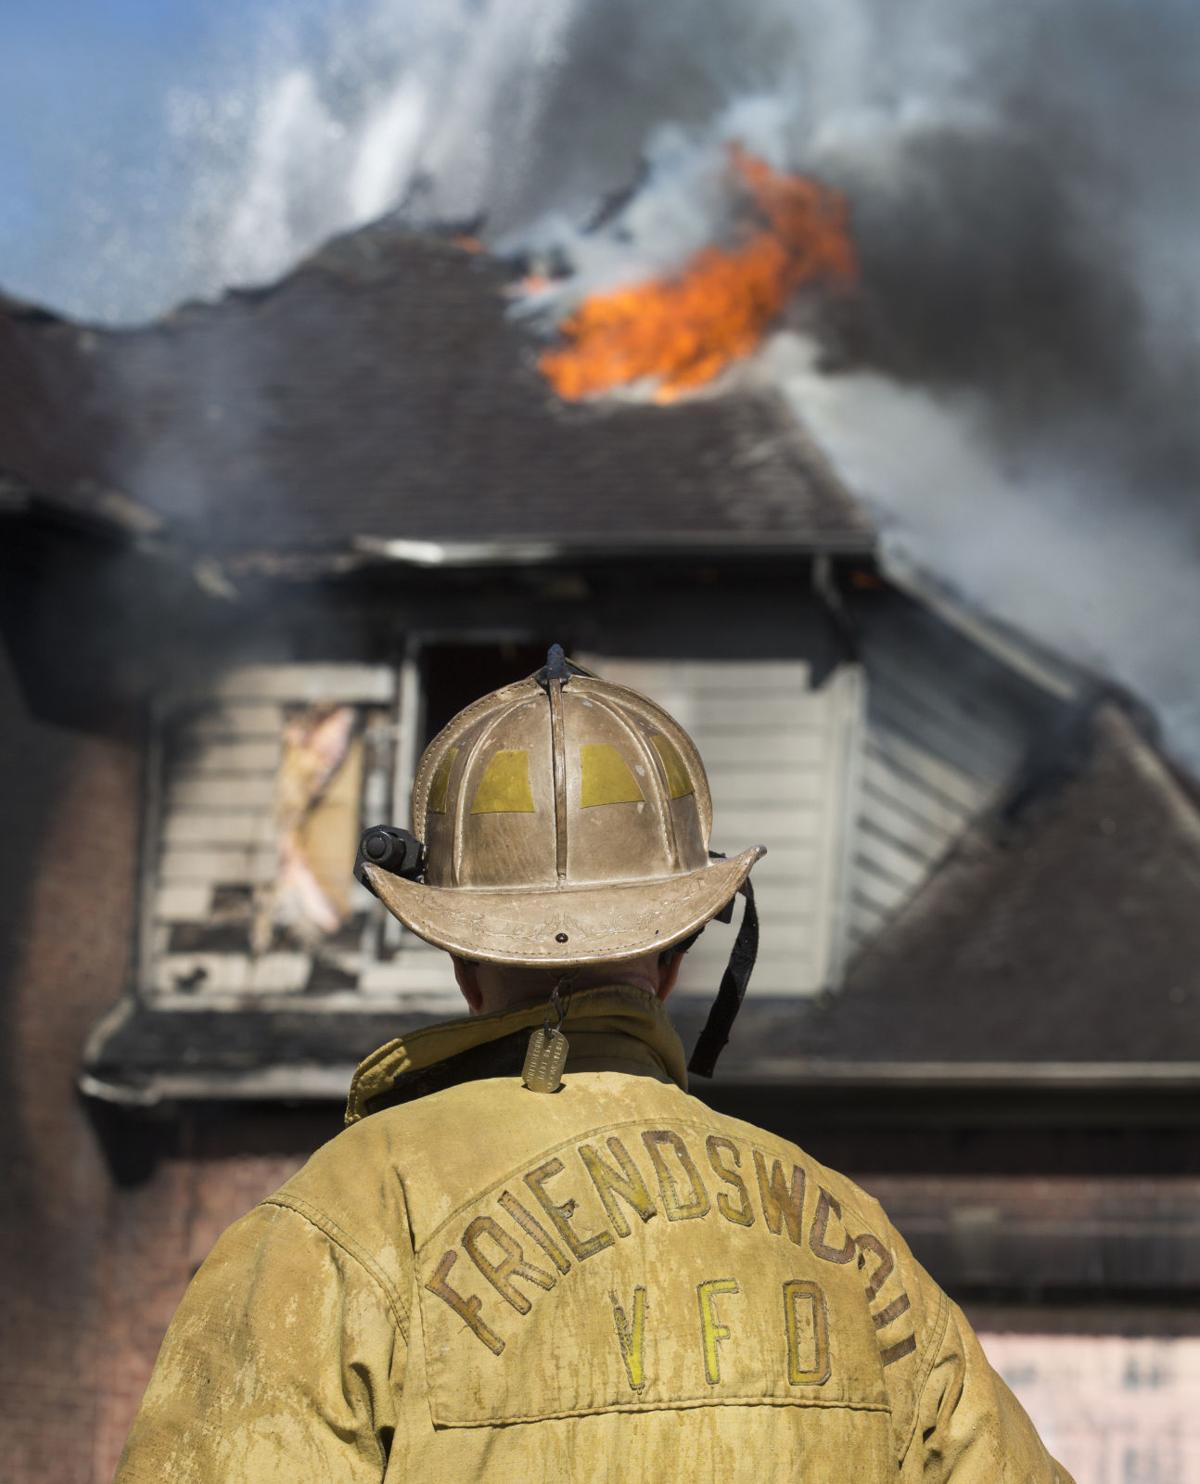 Friendswood House Fire